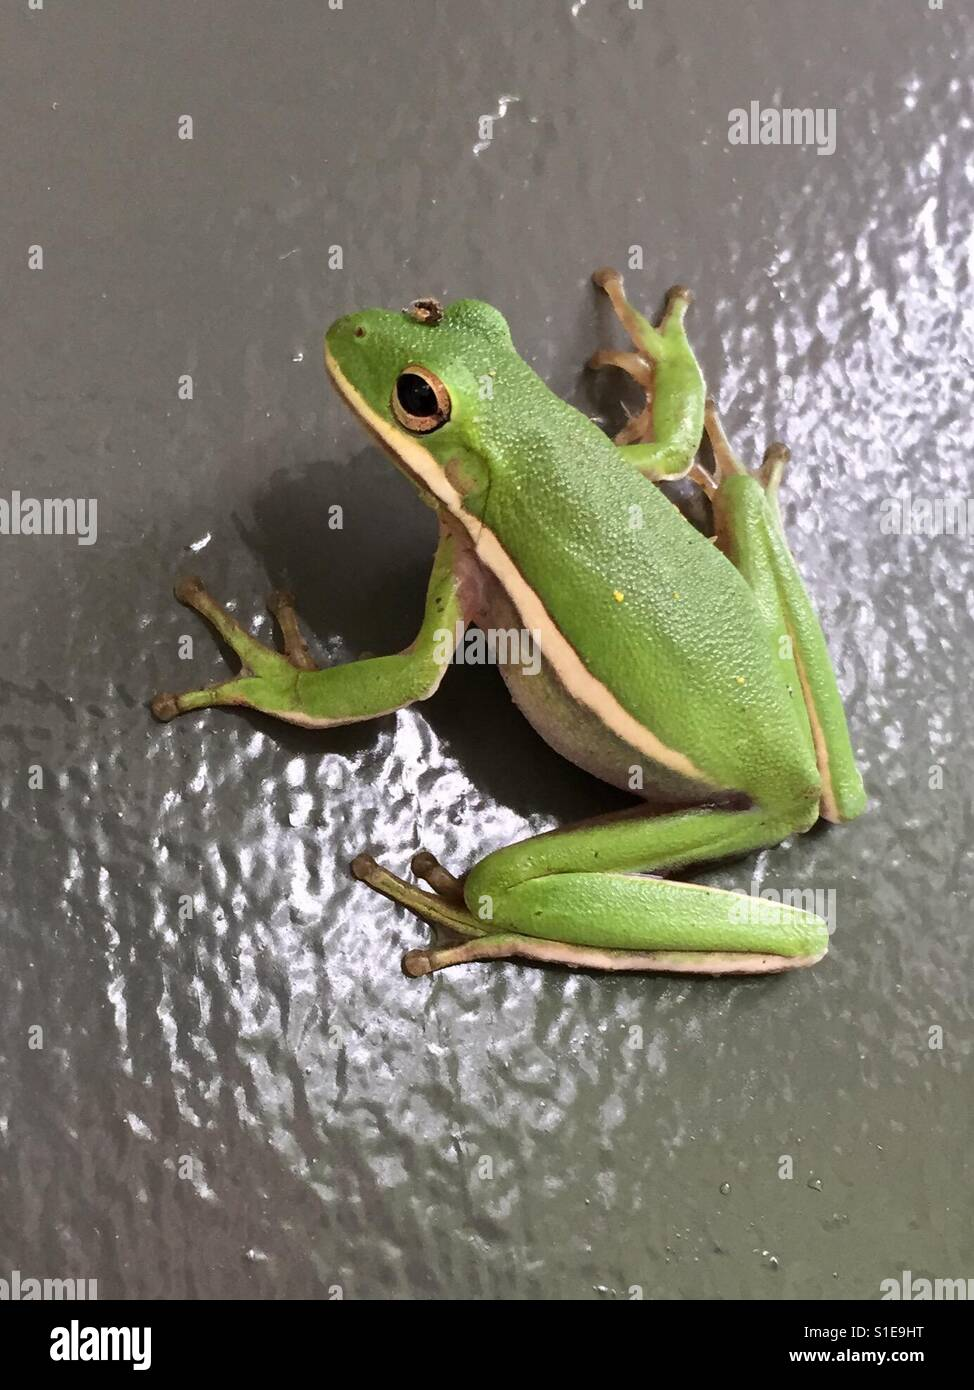 Green frog on a door. - Stock Image